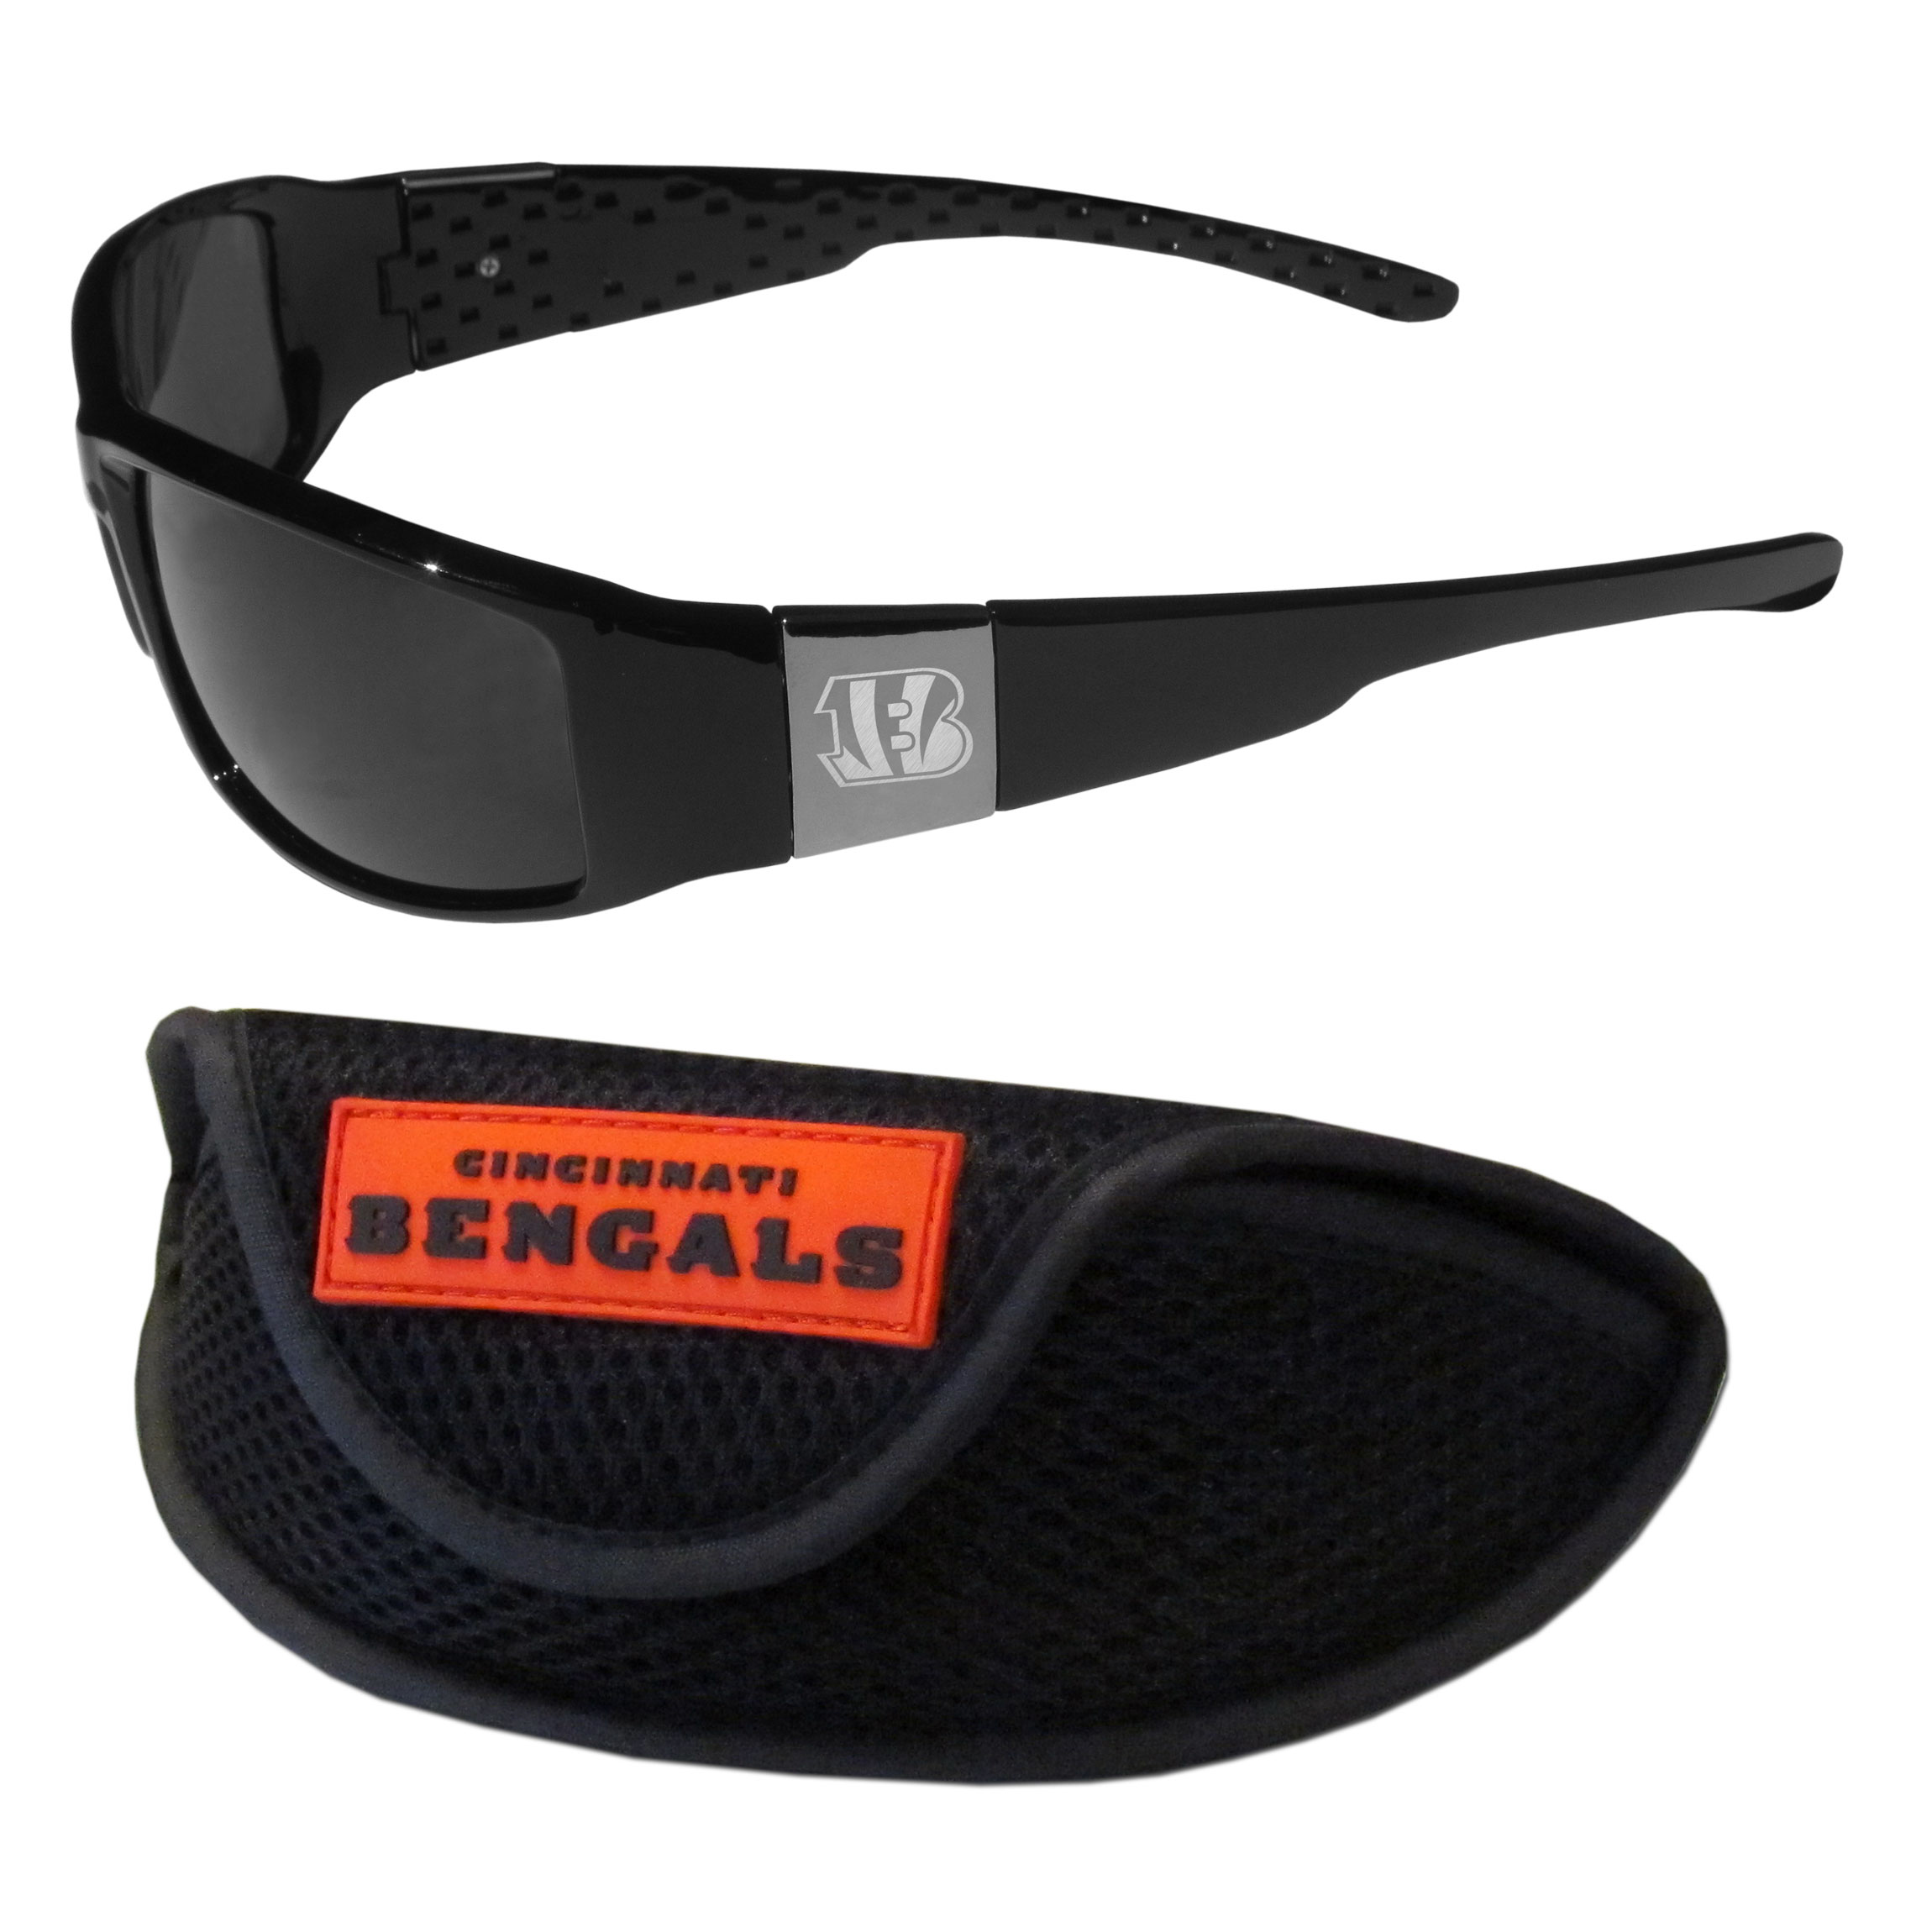 Cincinnati Bengals Chrome Wrap Sunglasses and Sports Case - Our sleek and stylish Cincinnati Bengals chrome wrap sunglasses and our sporty mesh case. The sunglasses feature etched team logos on each arm and 100% UVA/UVB protection. The case features a large and colorful team emblem.